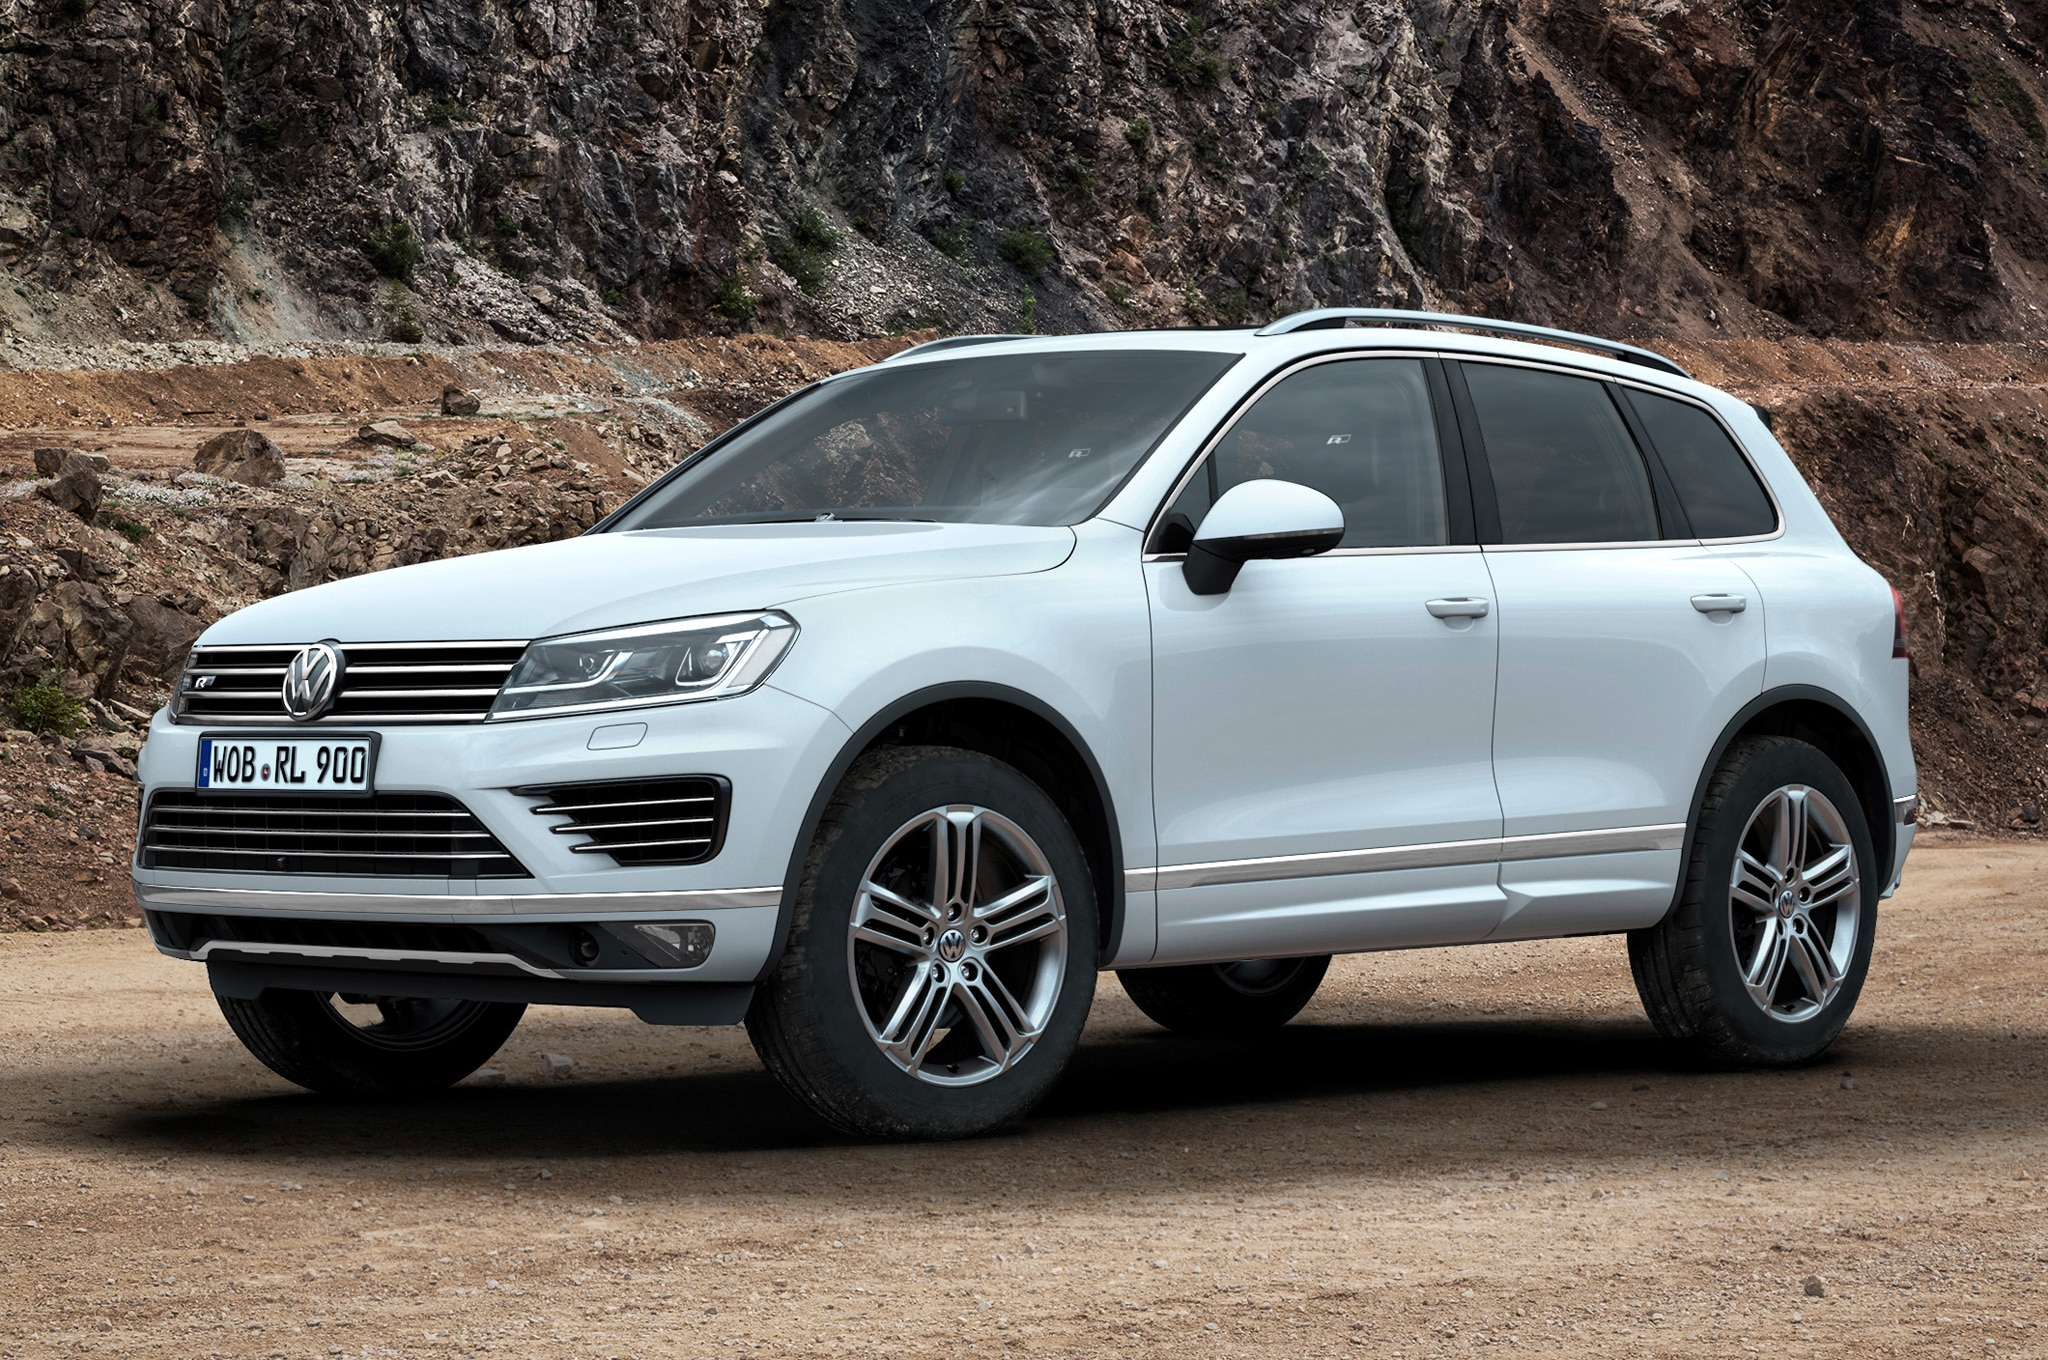 New 2015 Volkswagen Touareg Uk Pricing Cleaner Tdi Models Announced